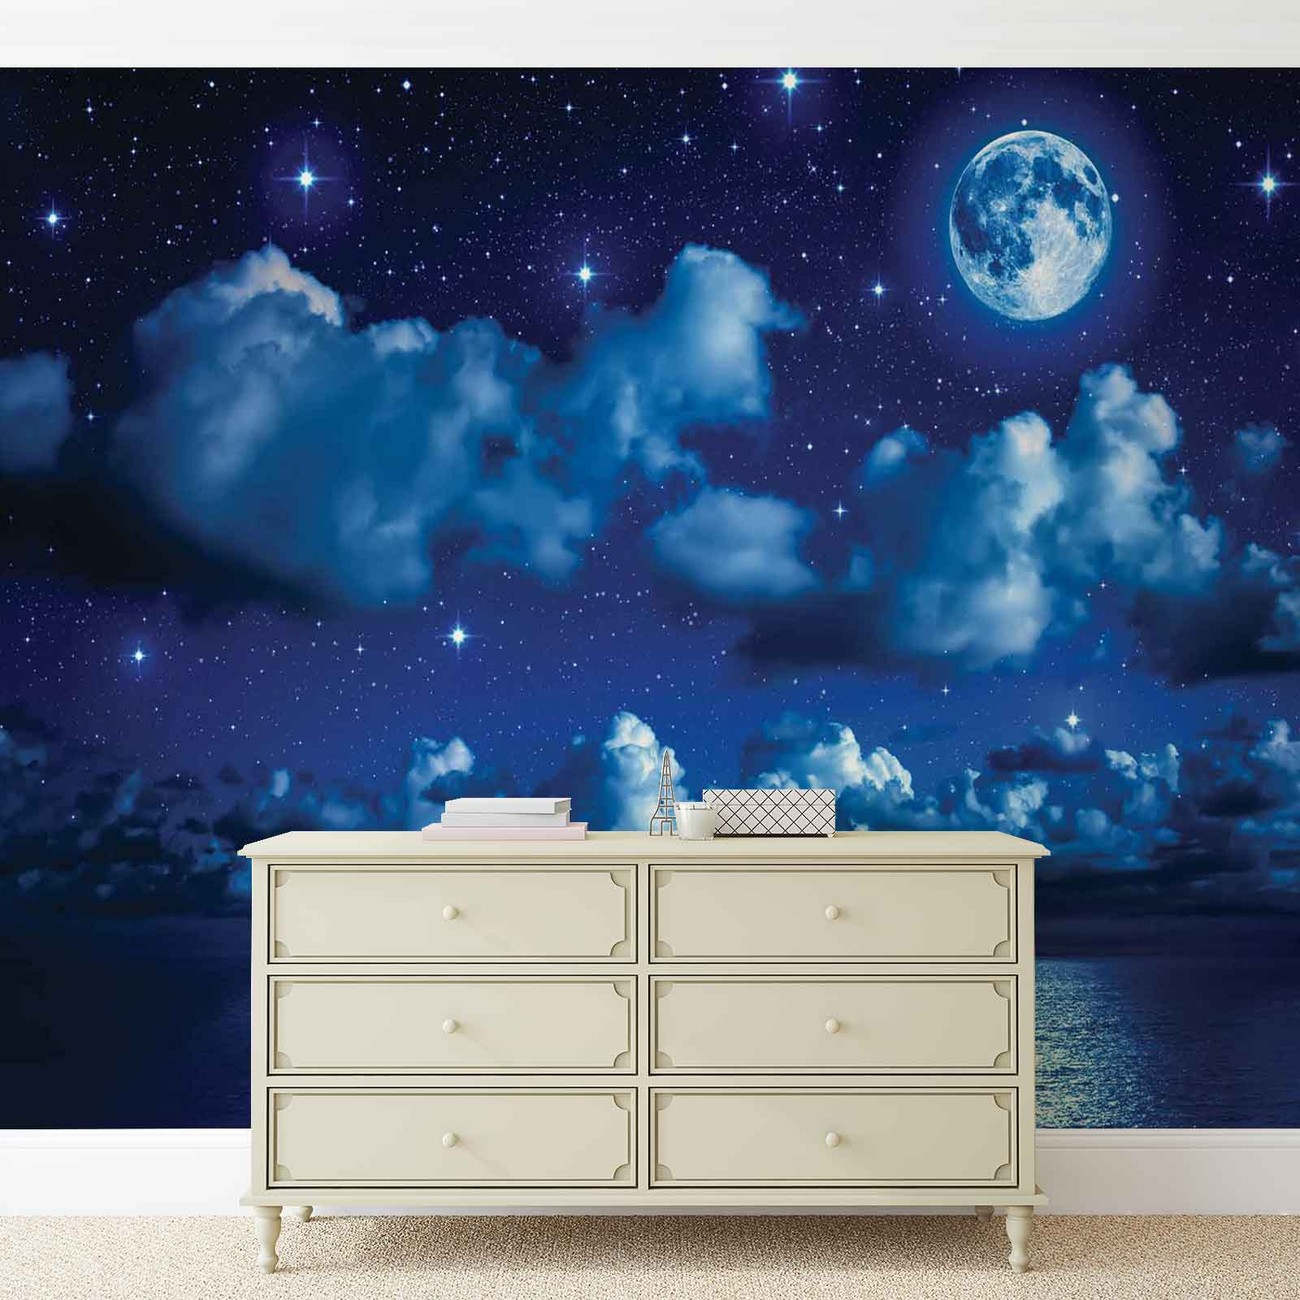 ciel lune nuages toiles nuit mer poster mural papier peint acheter le sur. Black Bedroom Furniture Sets. Home Design Ideas